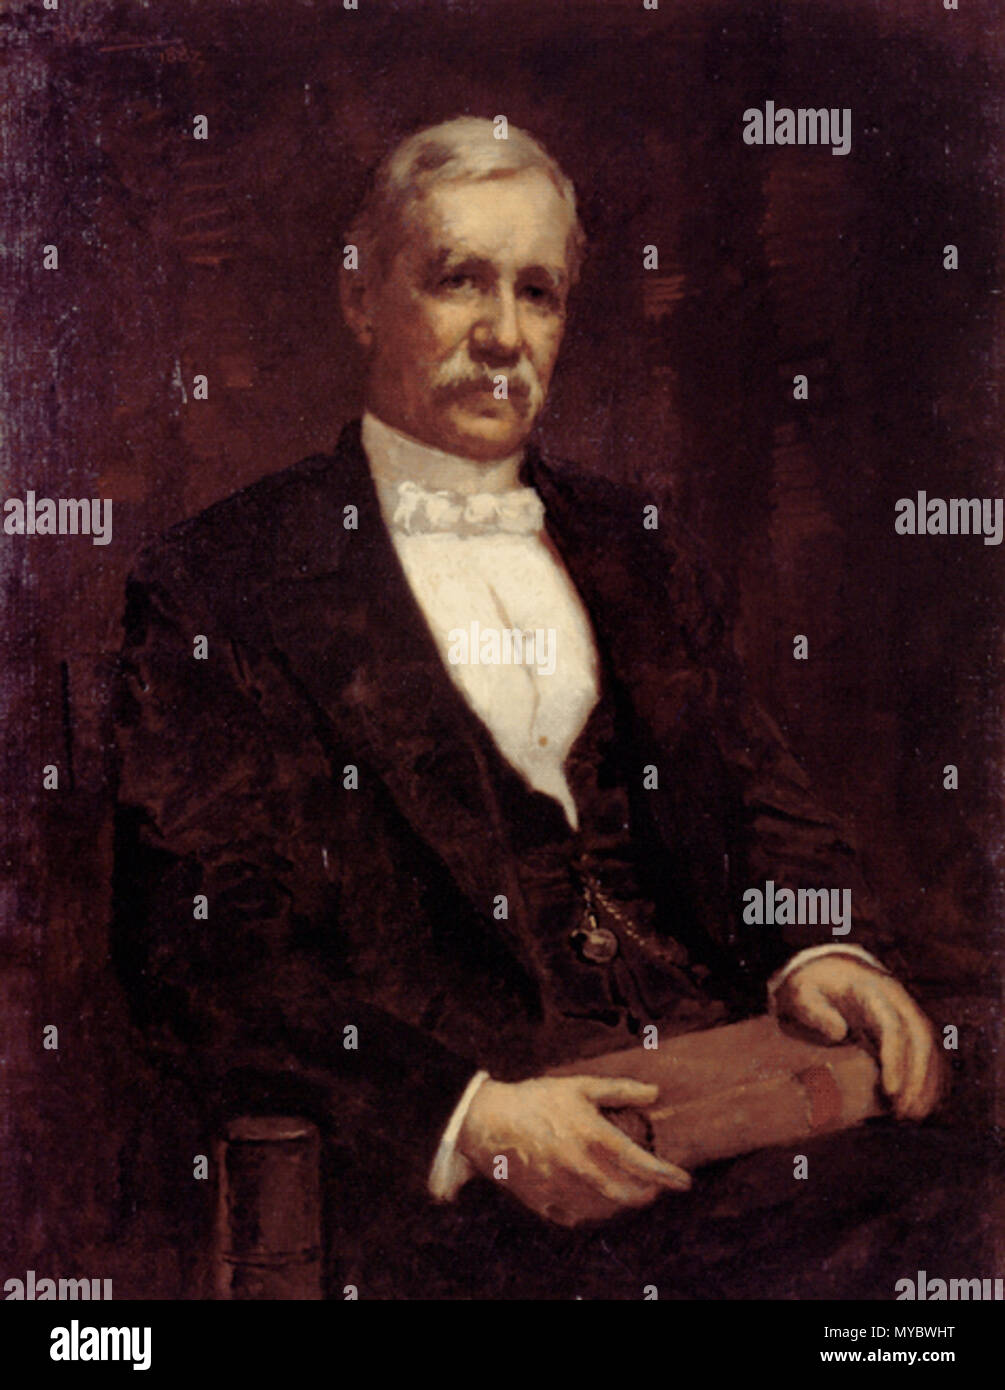 . Portrait of Charles Gideon Putnam, MD. By Edwin T. Billings (1824-1893) Oil on canvas. H. 30 ¼, W 25 ½ in. between 1865 and 1875.   Edwin Tryon Billings (1824–1893)  Alternative names Edwin T. Billings; E. T. Billings  Description painter American artist  Date of birth/death 20 November 1824 1893  Authority control  : Q5346880 VIAF:95965257 ULAN:500043394 RKD:103612 106 Charles Gideon Putnam MD ca1860s by Edwin T Billings HistoricNewEngland - Stock Image